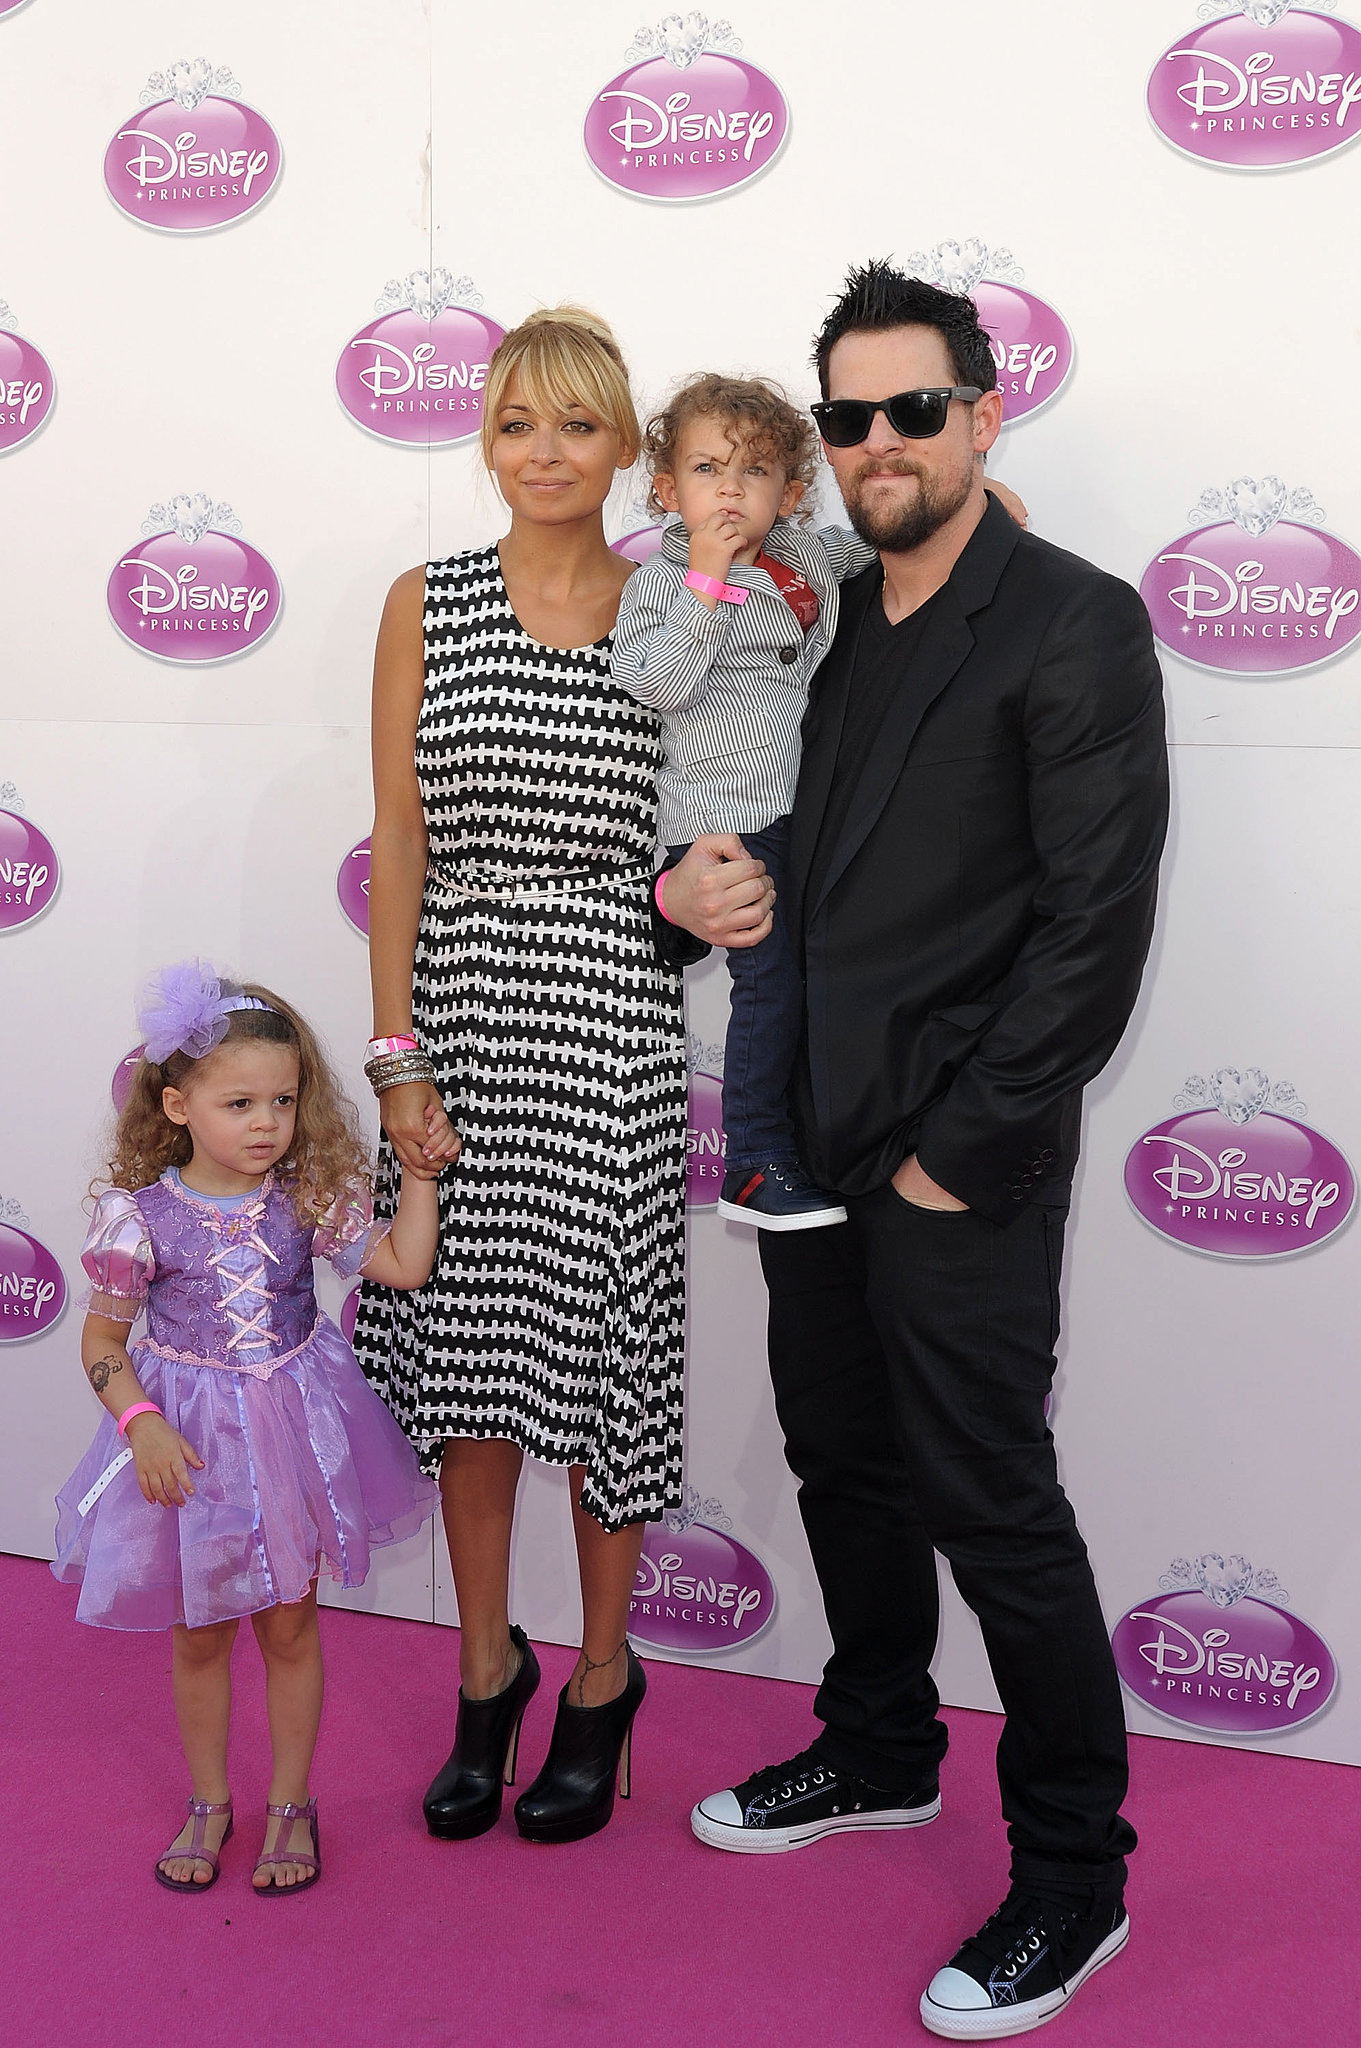 Nicole Richie and Joel Madden spent a fun family day with their little ones, Harlow and Sparrow, at a Disney event in London during October 2011.